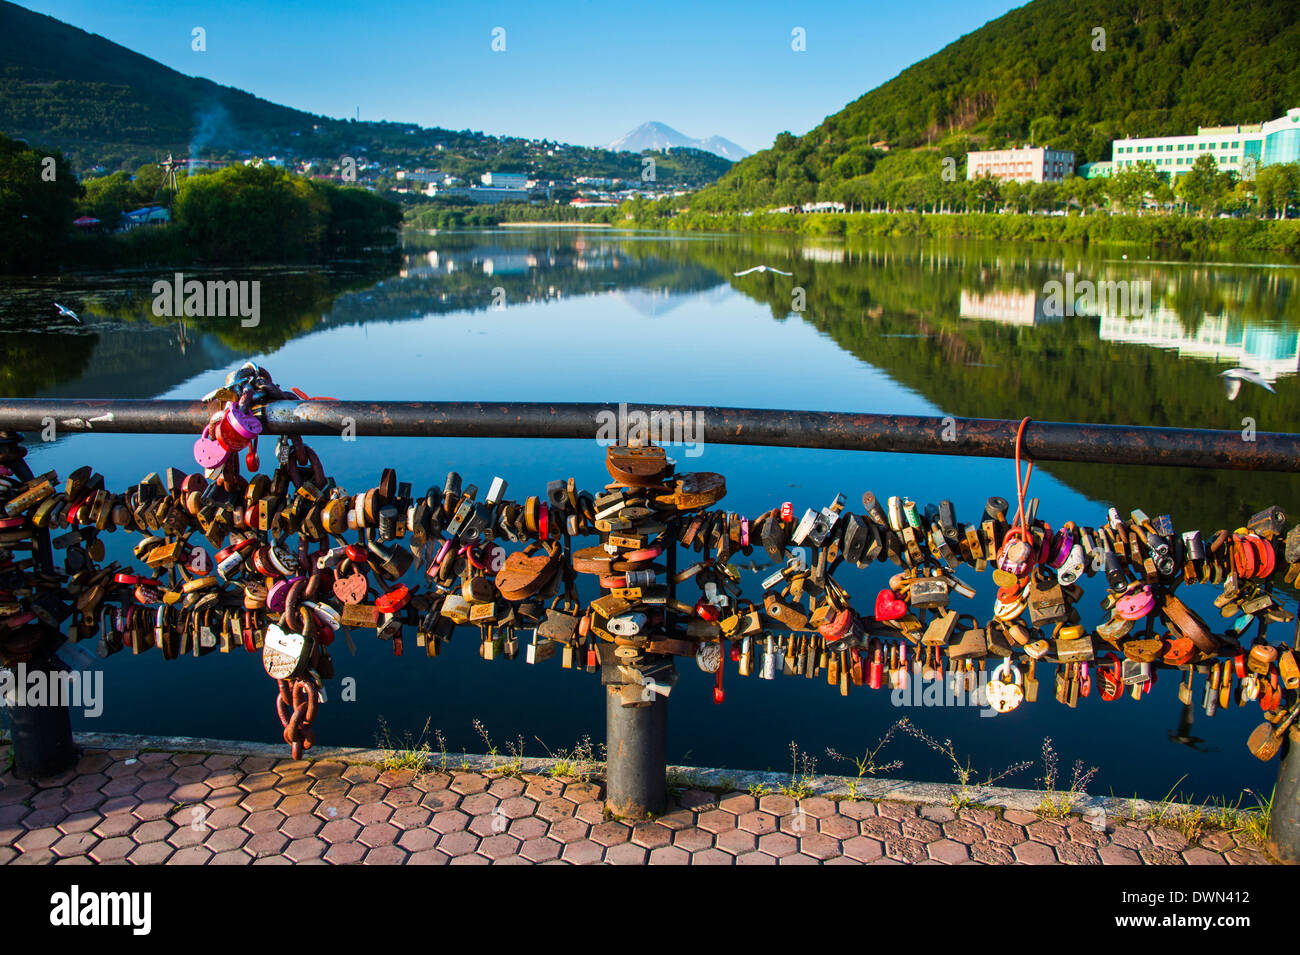 Lots of padlocks and chains on a handrail above an artifical lake in Petropavlovsk-Kamchatsky, Kamchatka, Russia, Eurasia - Stock Image